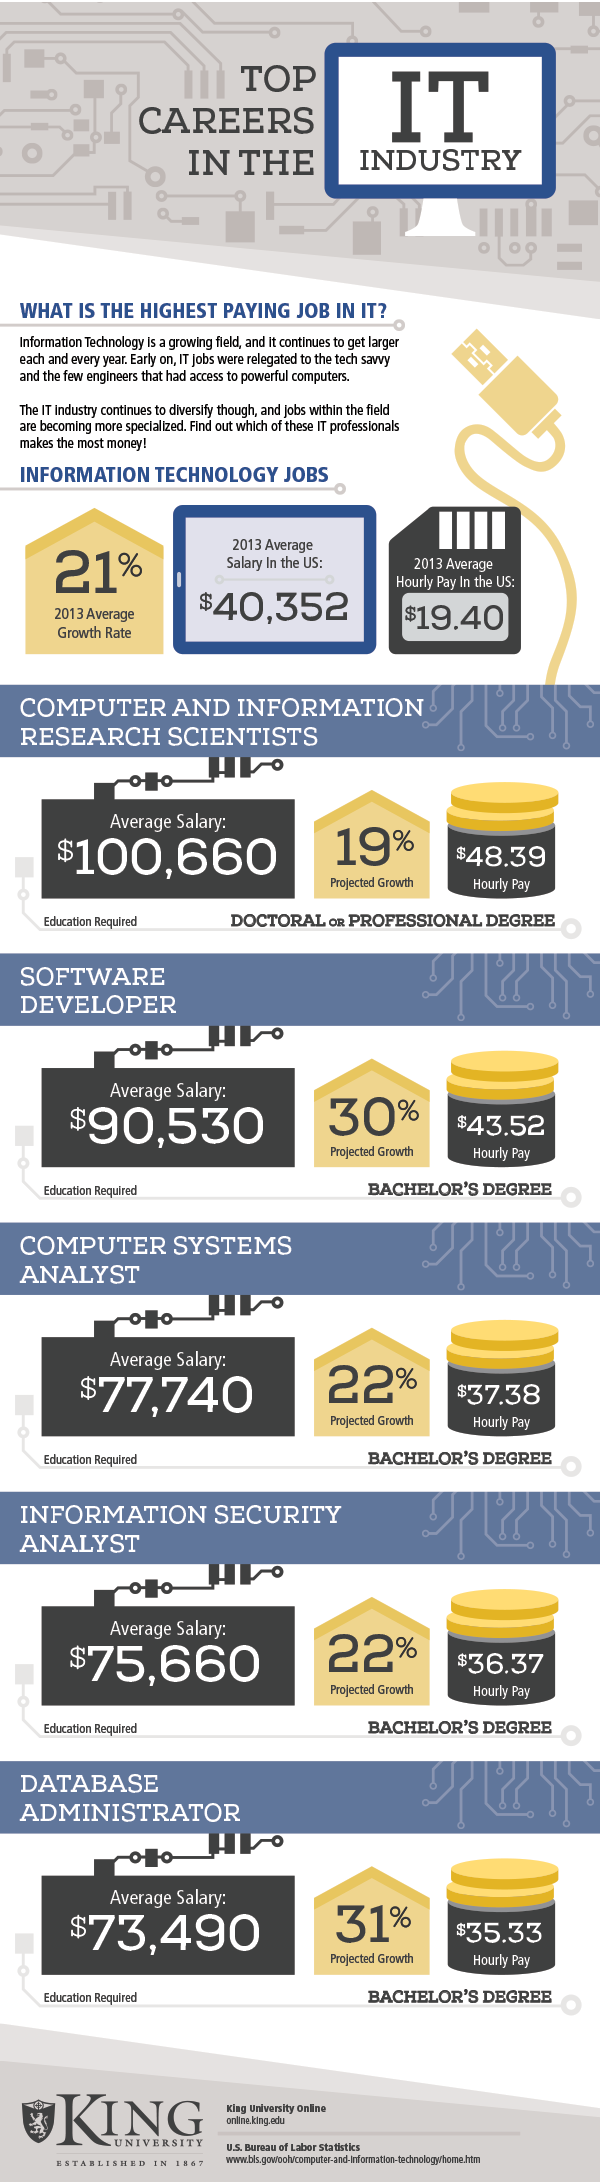 Top Careers in IT [Infographic] Top careers, Technology